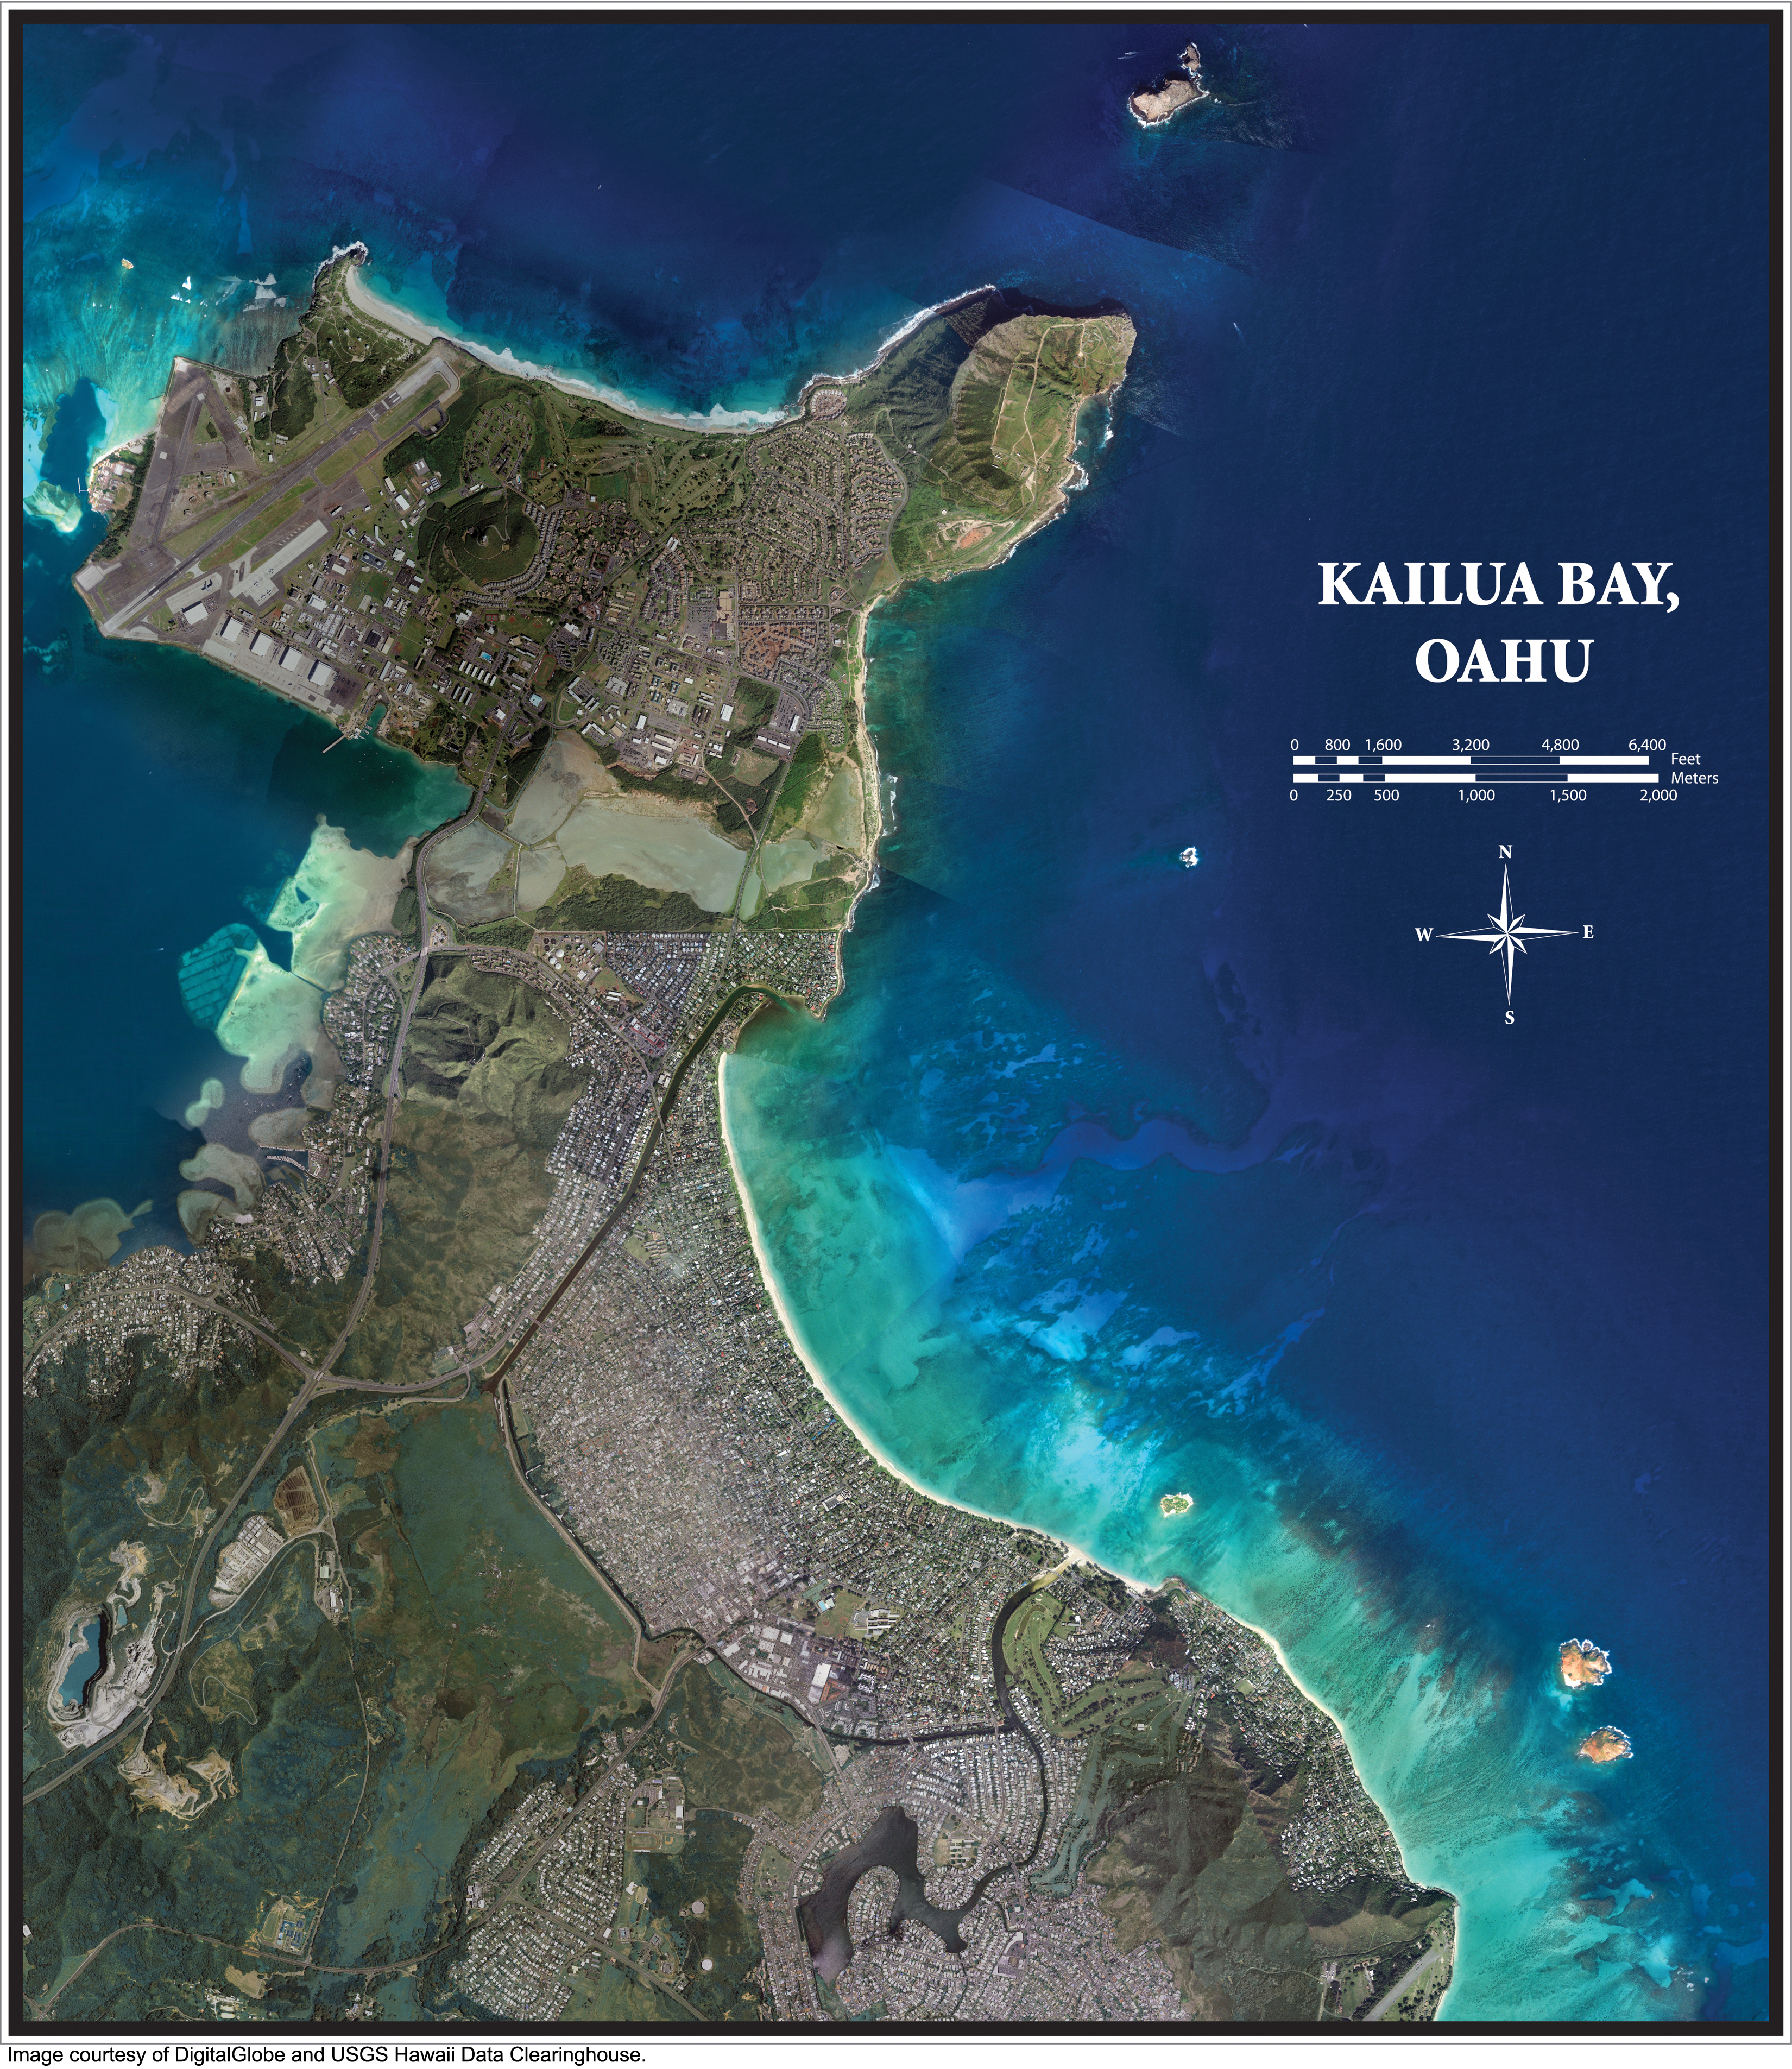 poster kailua bay oahu hawaii coastal geology group